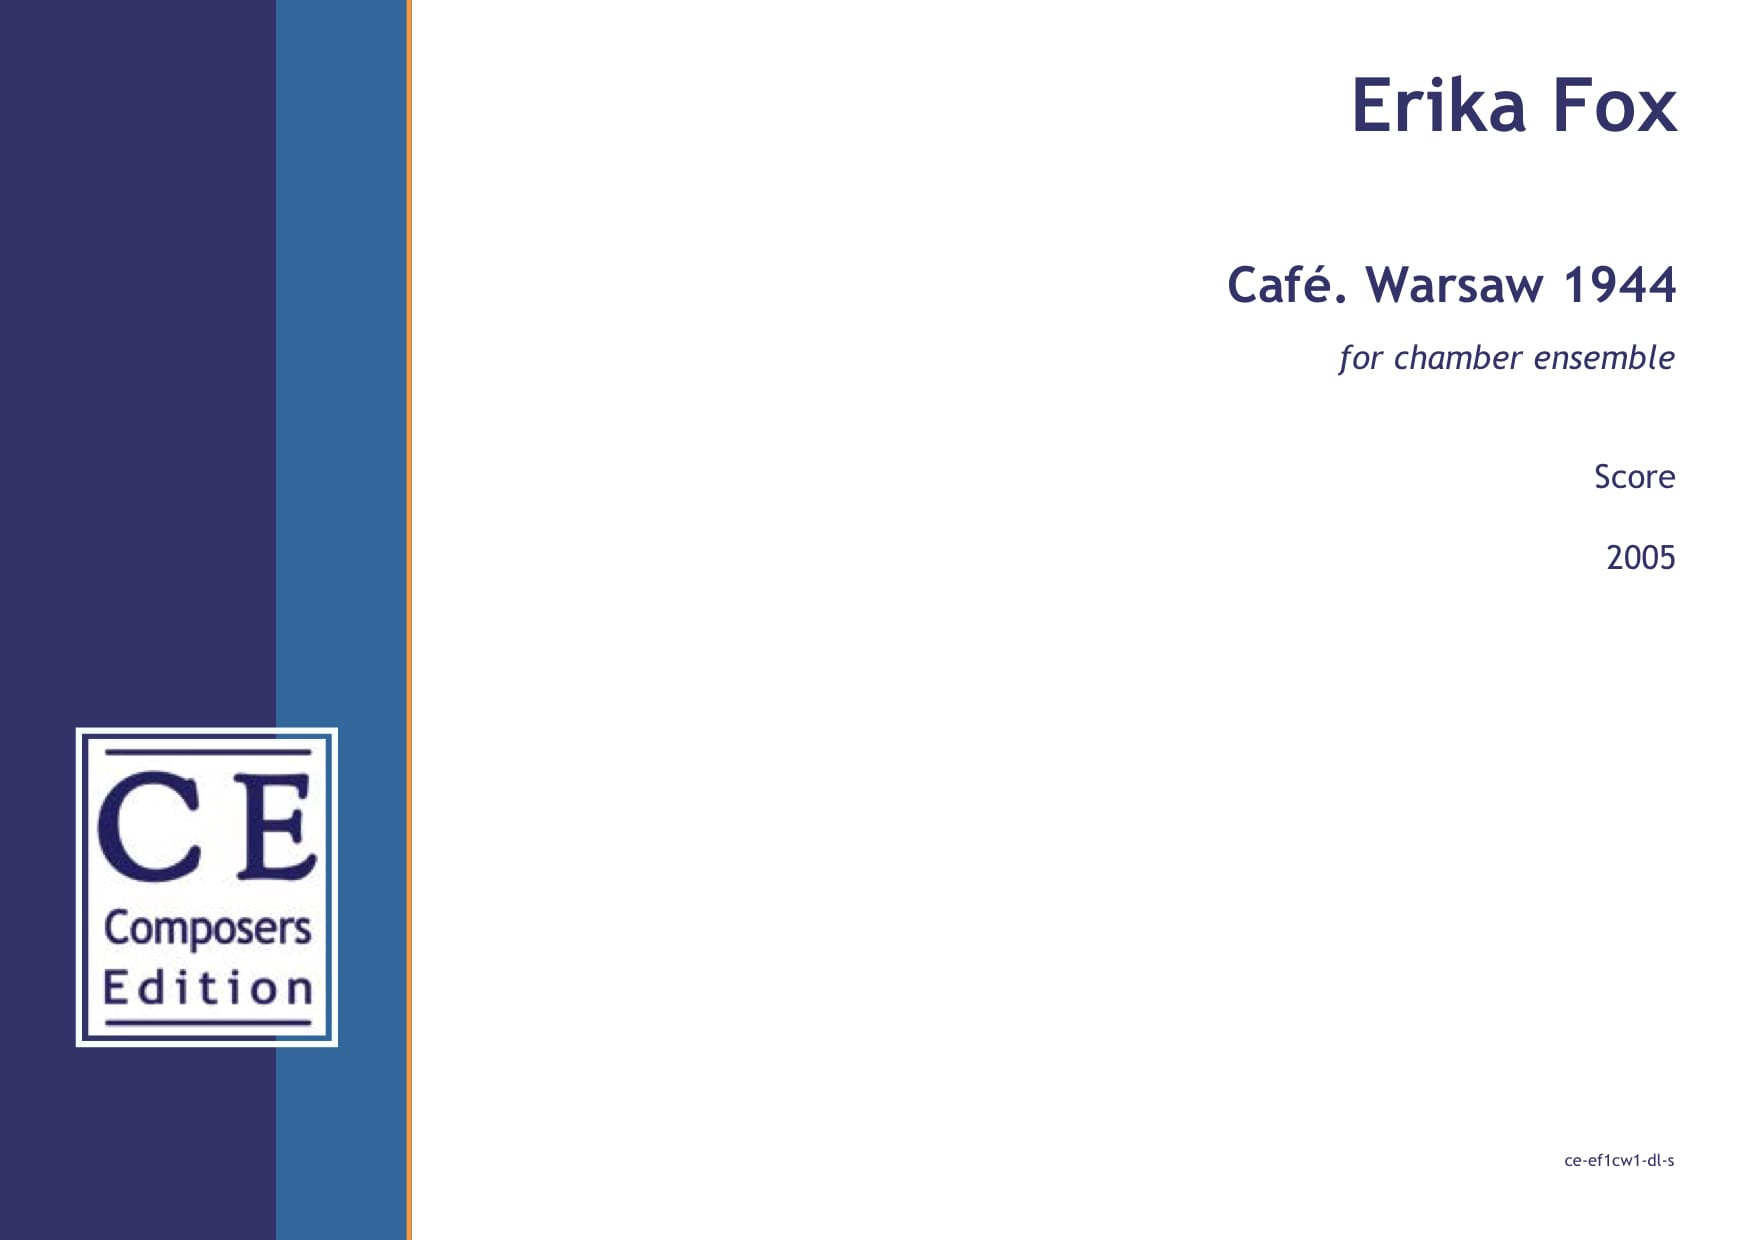 Erika Fox: Café. Warsaw 1944 for chamber ensemble